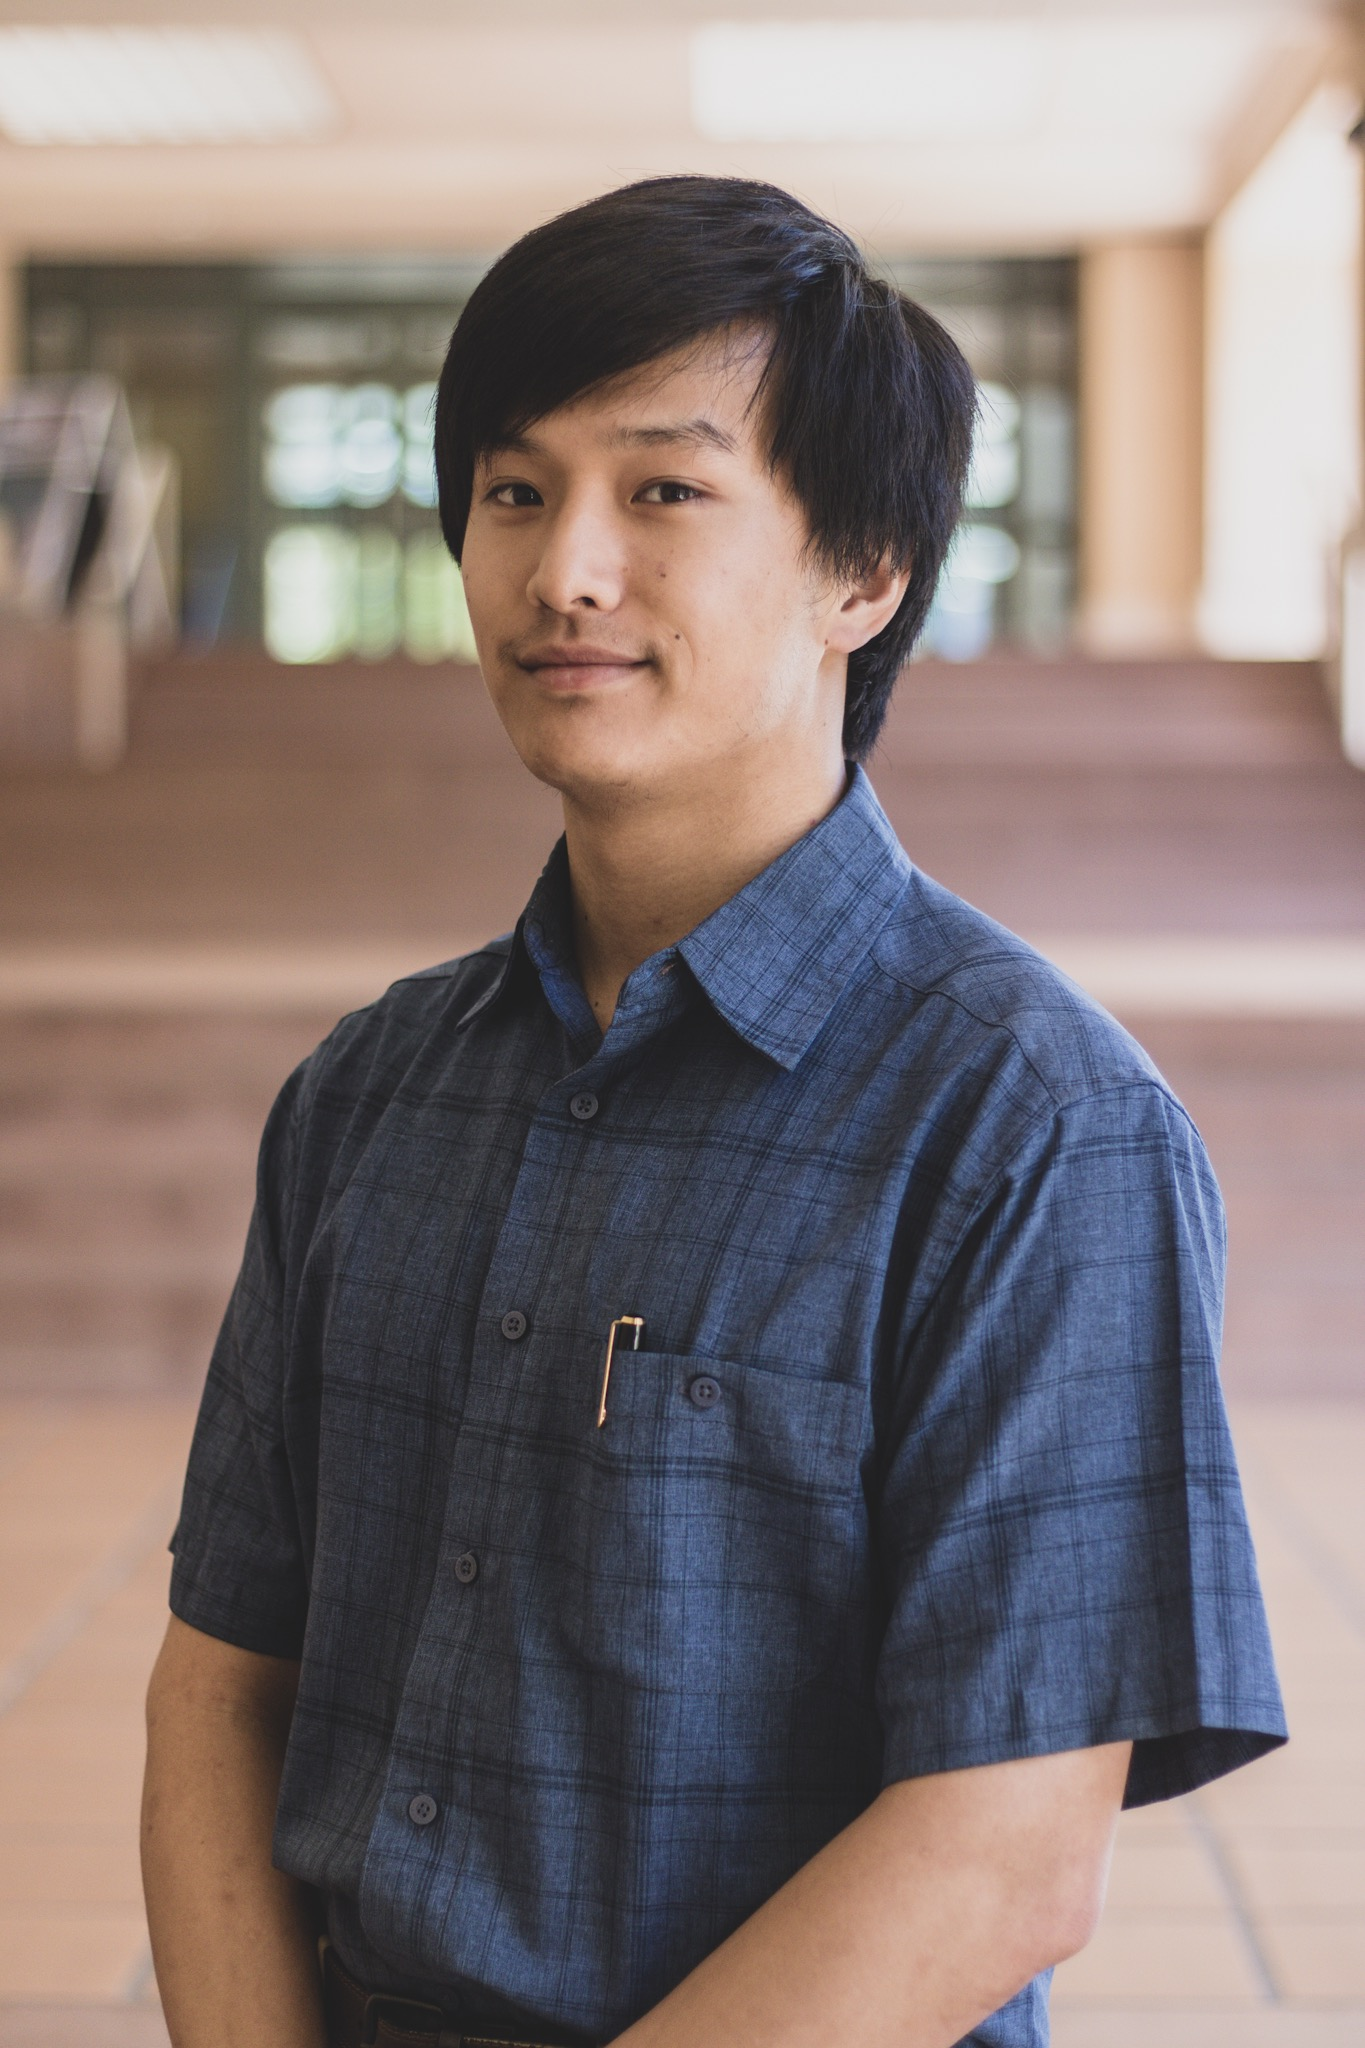 Kedwin Chen  Organizer  I joined Camp PolyHacks after participating in one of their hackathons—I had a wonderful time and wanted to use my skills to give back and help bring the experience I had to other hackers.  I am a part of the following clubs: Cal Poly Fencing (CPFC), White Hat, Cal Poly Linux Users Group (CPLUG), Northrop Grumman Collaboration Project (NGCP). In my free time (what free time?) I like to learn more about computer and network security (physical (e.g., locks and lockpicking) hardware, firmware, software, and network security, social engineering, and more).   LinkedIn